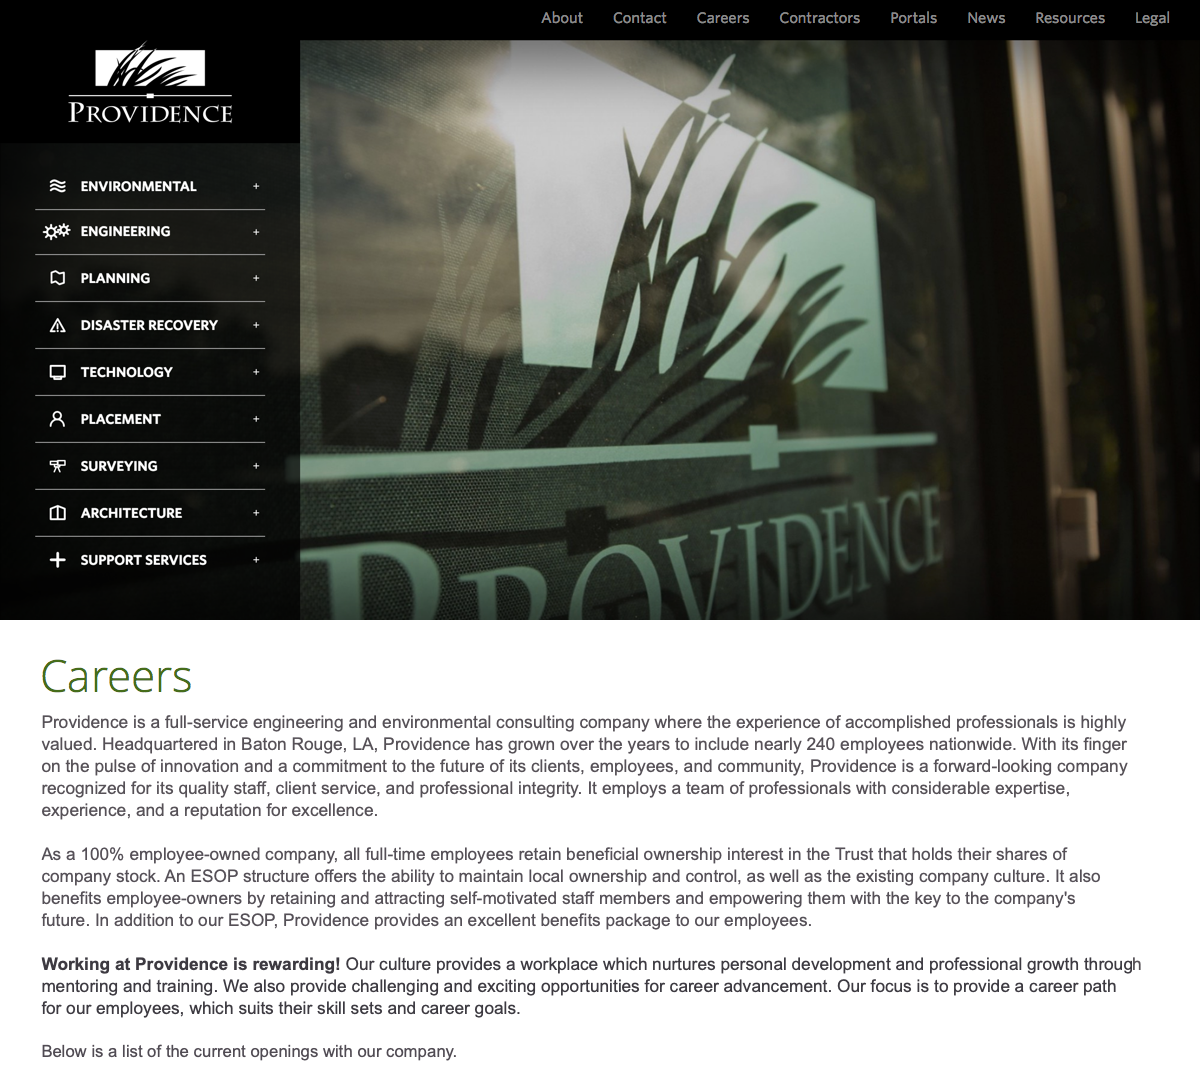 Providence – An Engineering, Environmental, and Disaster Recovery Firm